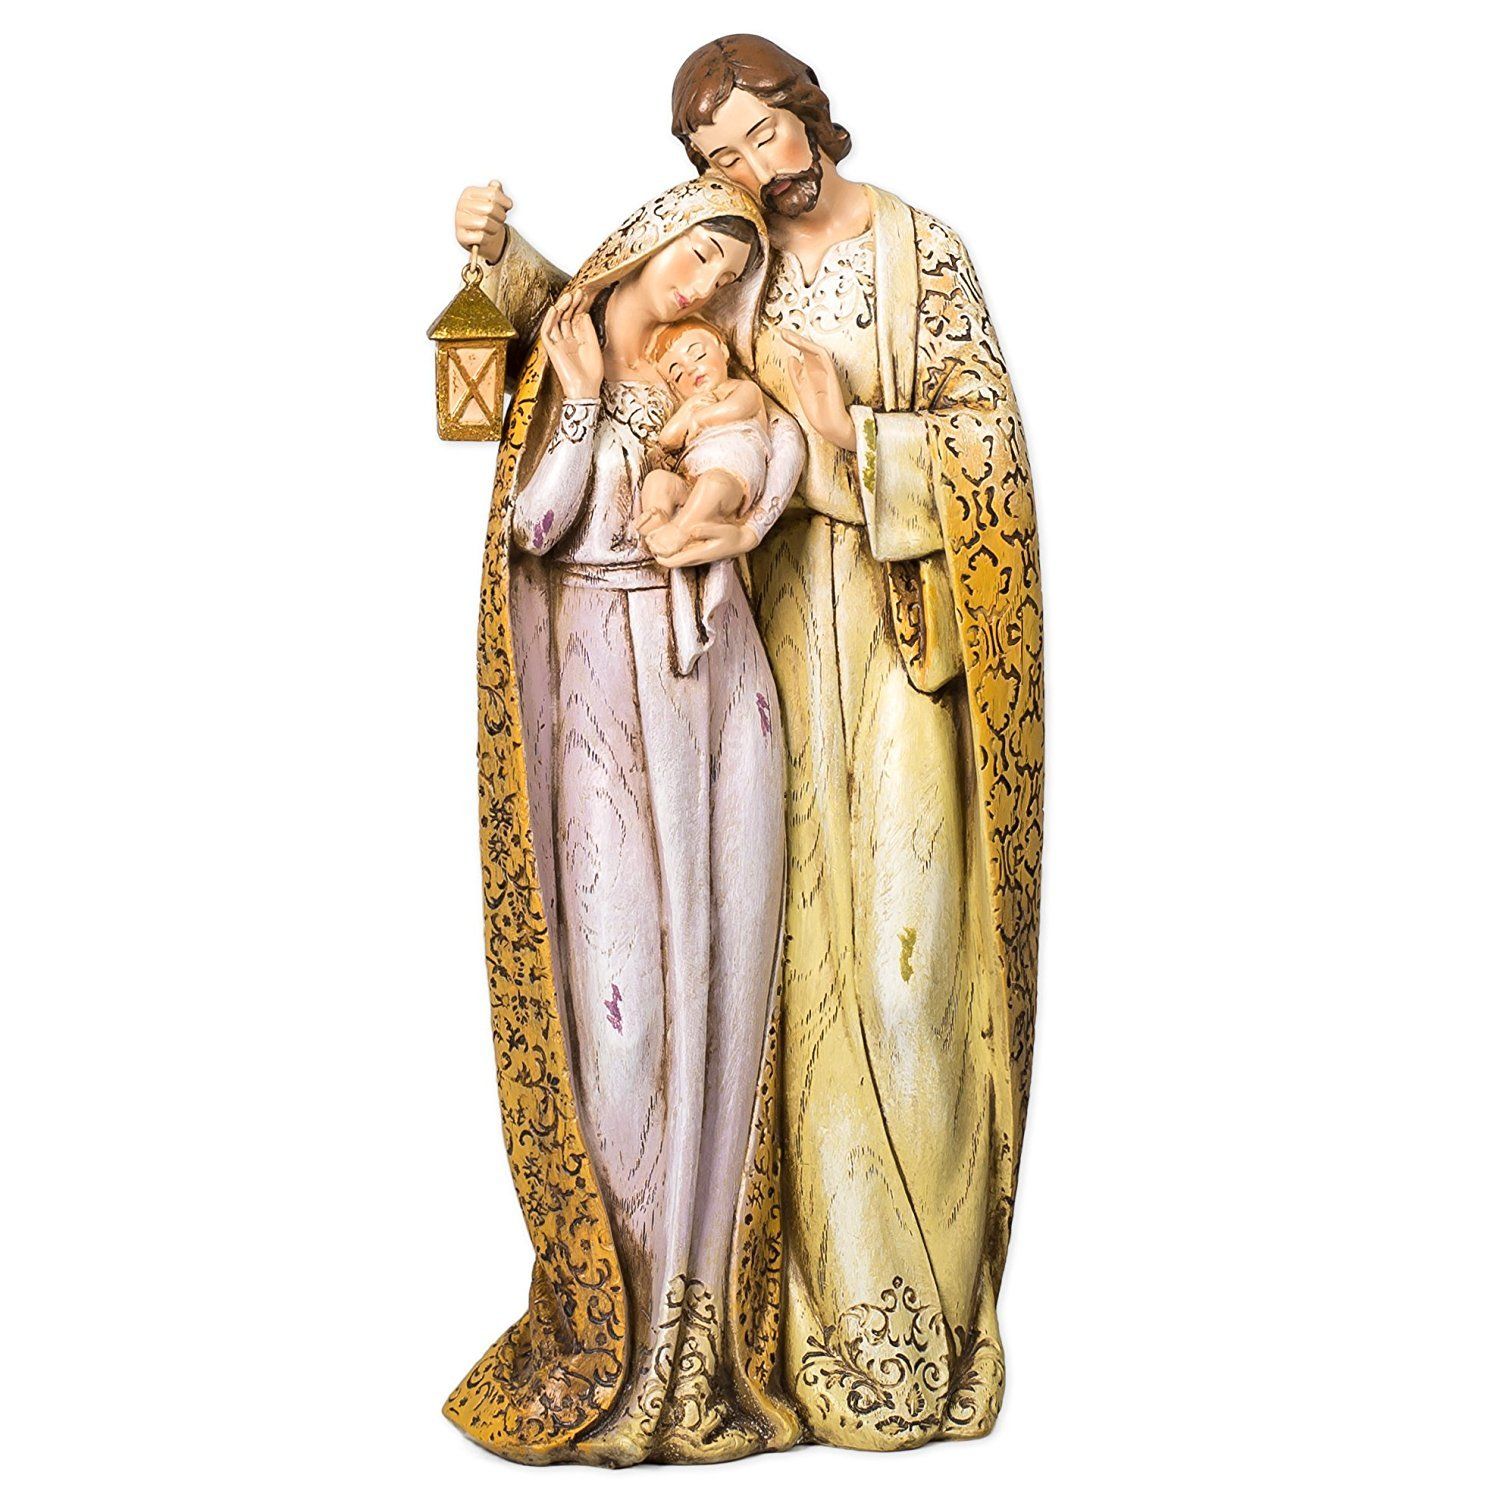 Embroidered Robe Holy Family 10 inch Resin Stone Christmas Nativity Figurine Roman 31928